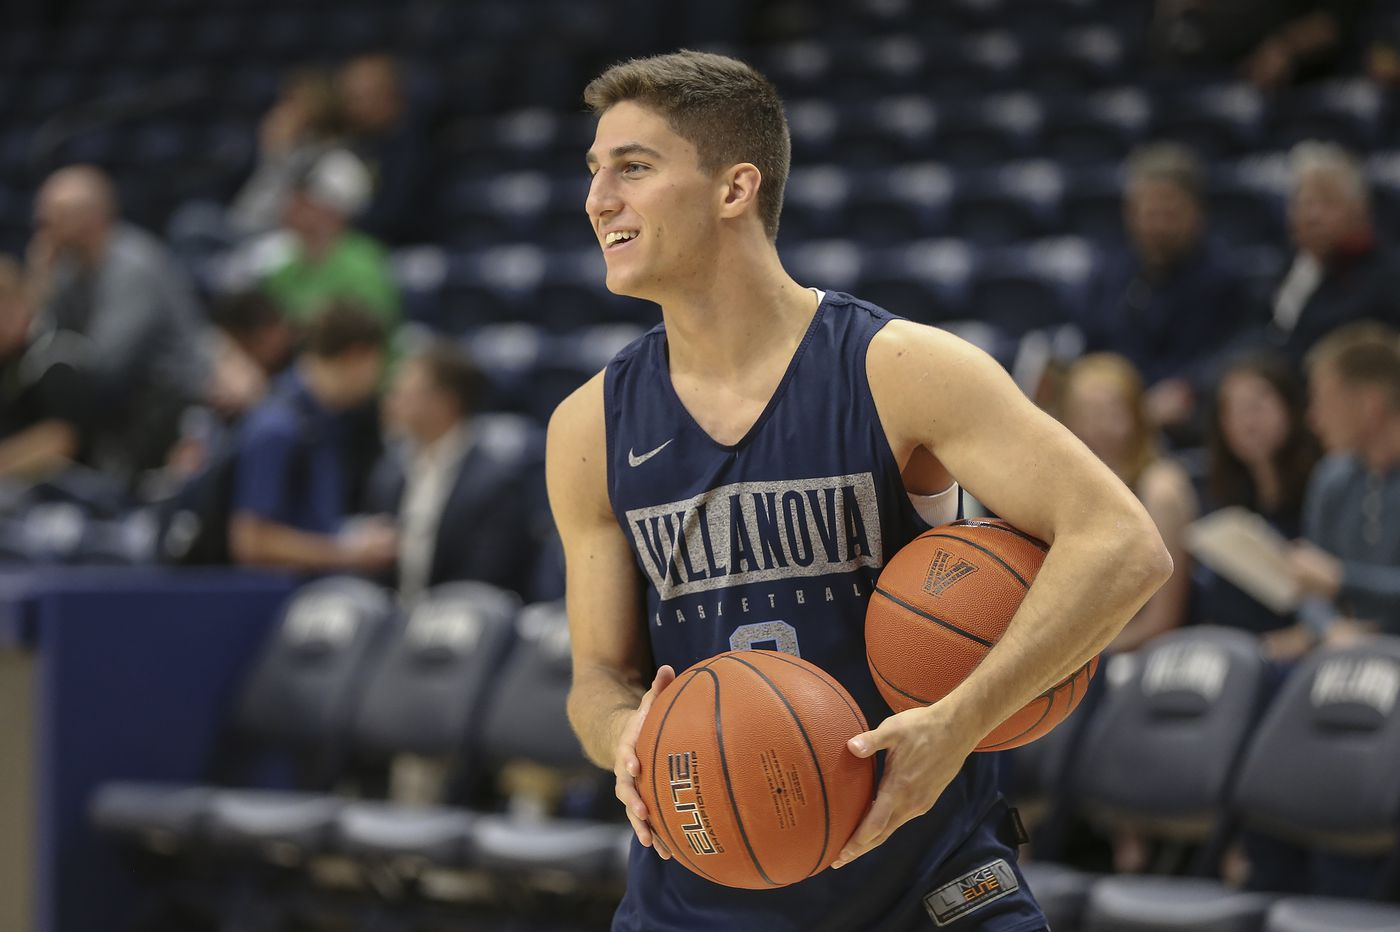 Injuries are affecting Collin Gillespie's prep for start of Villanova's basketball season